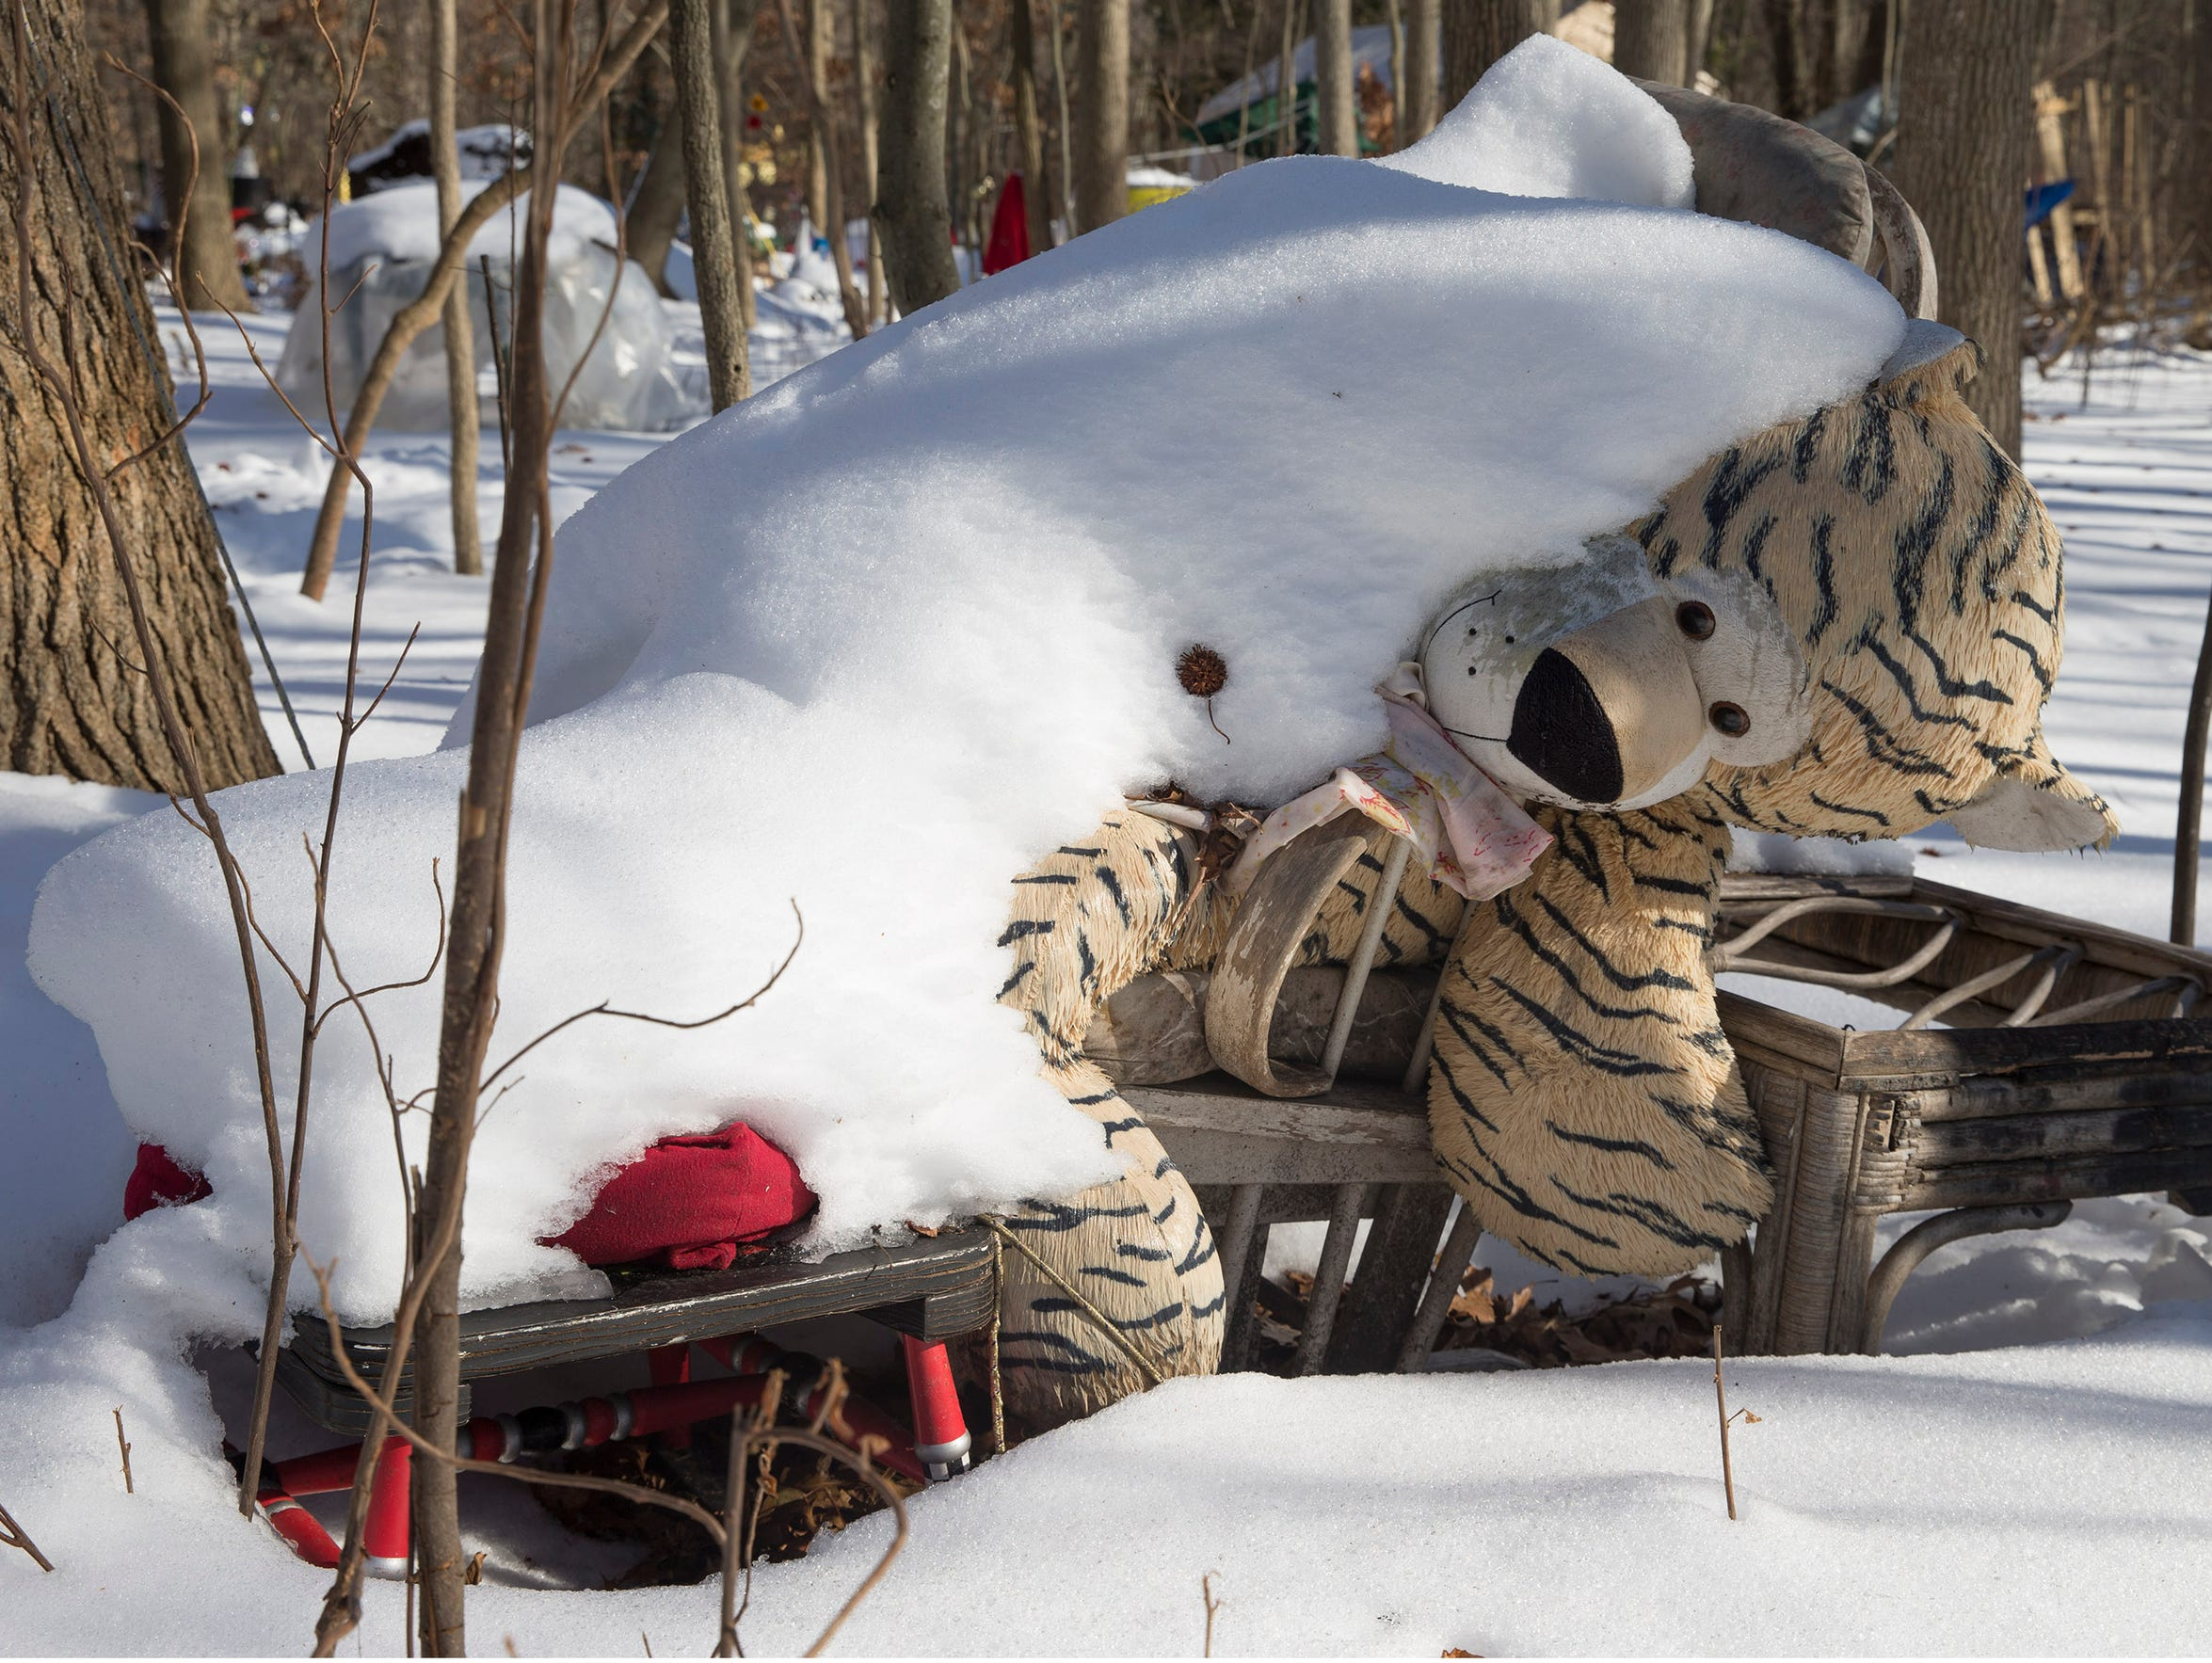 Snow covers a large stuffed tiger used as a sort of lawn ornament to mark the property of a resident in the Neptune homeless encampment